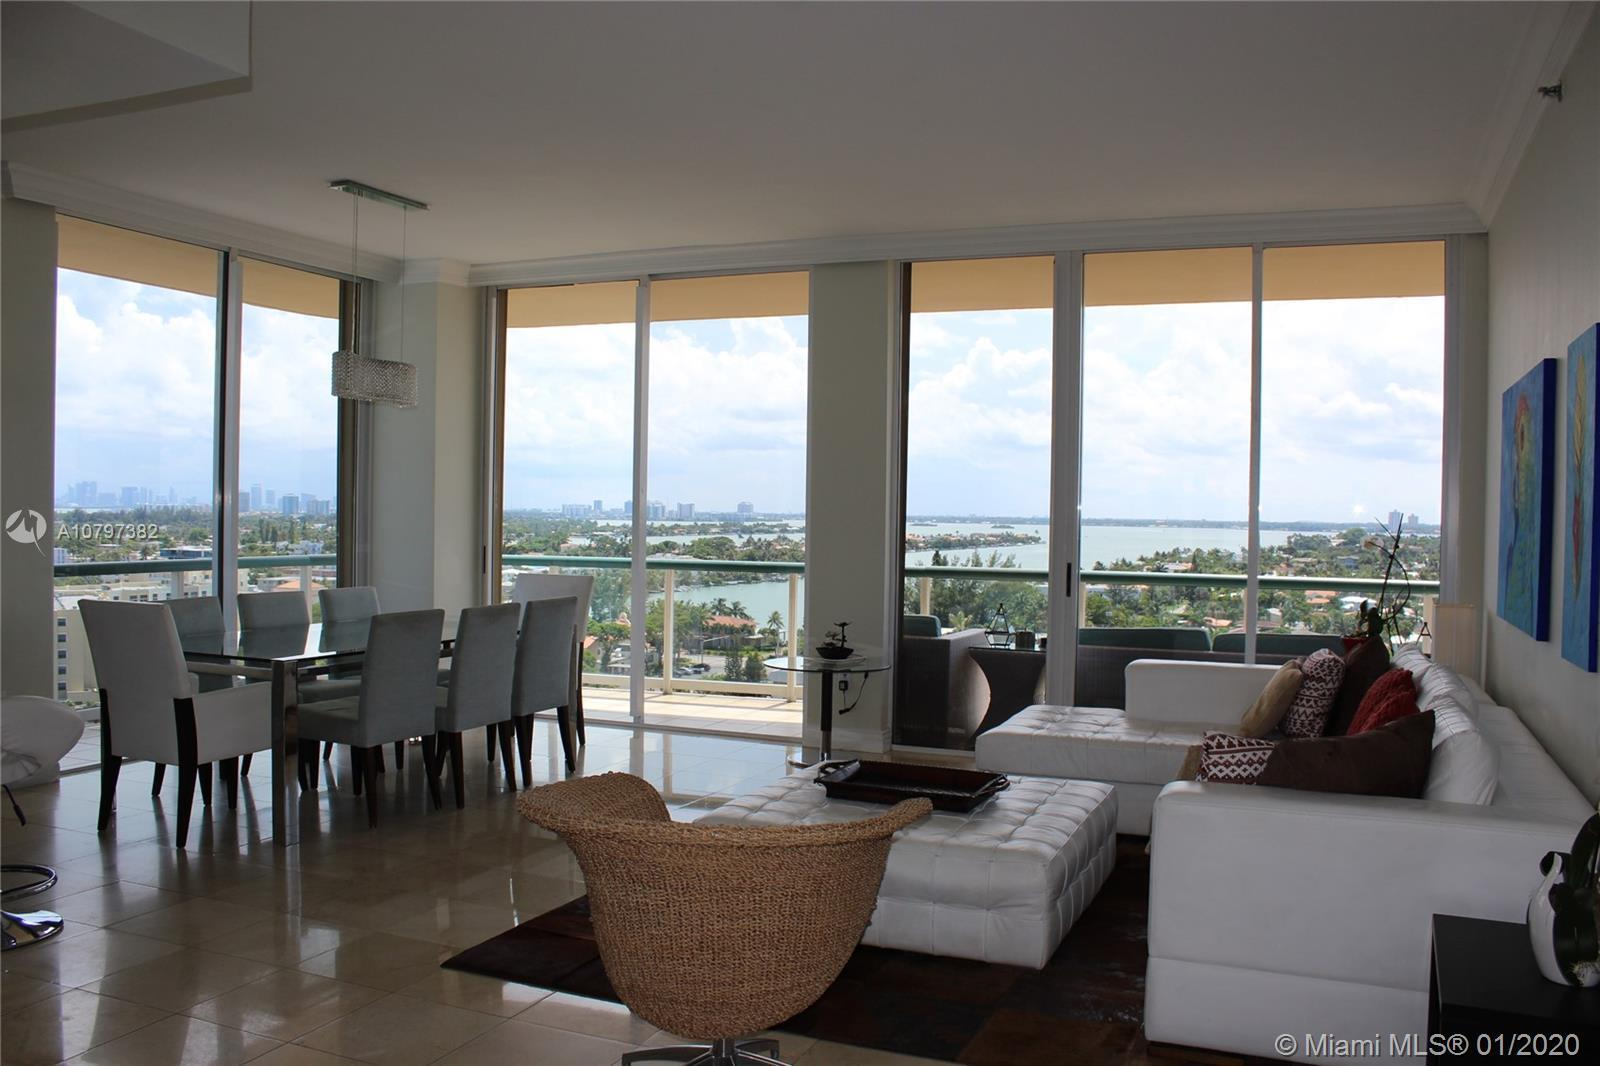 One of kind penthouse in quiet, yet vibrant Surfside, with 10 ft ceiling and the most amazing views